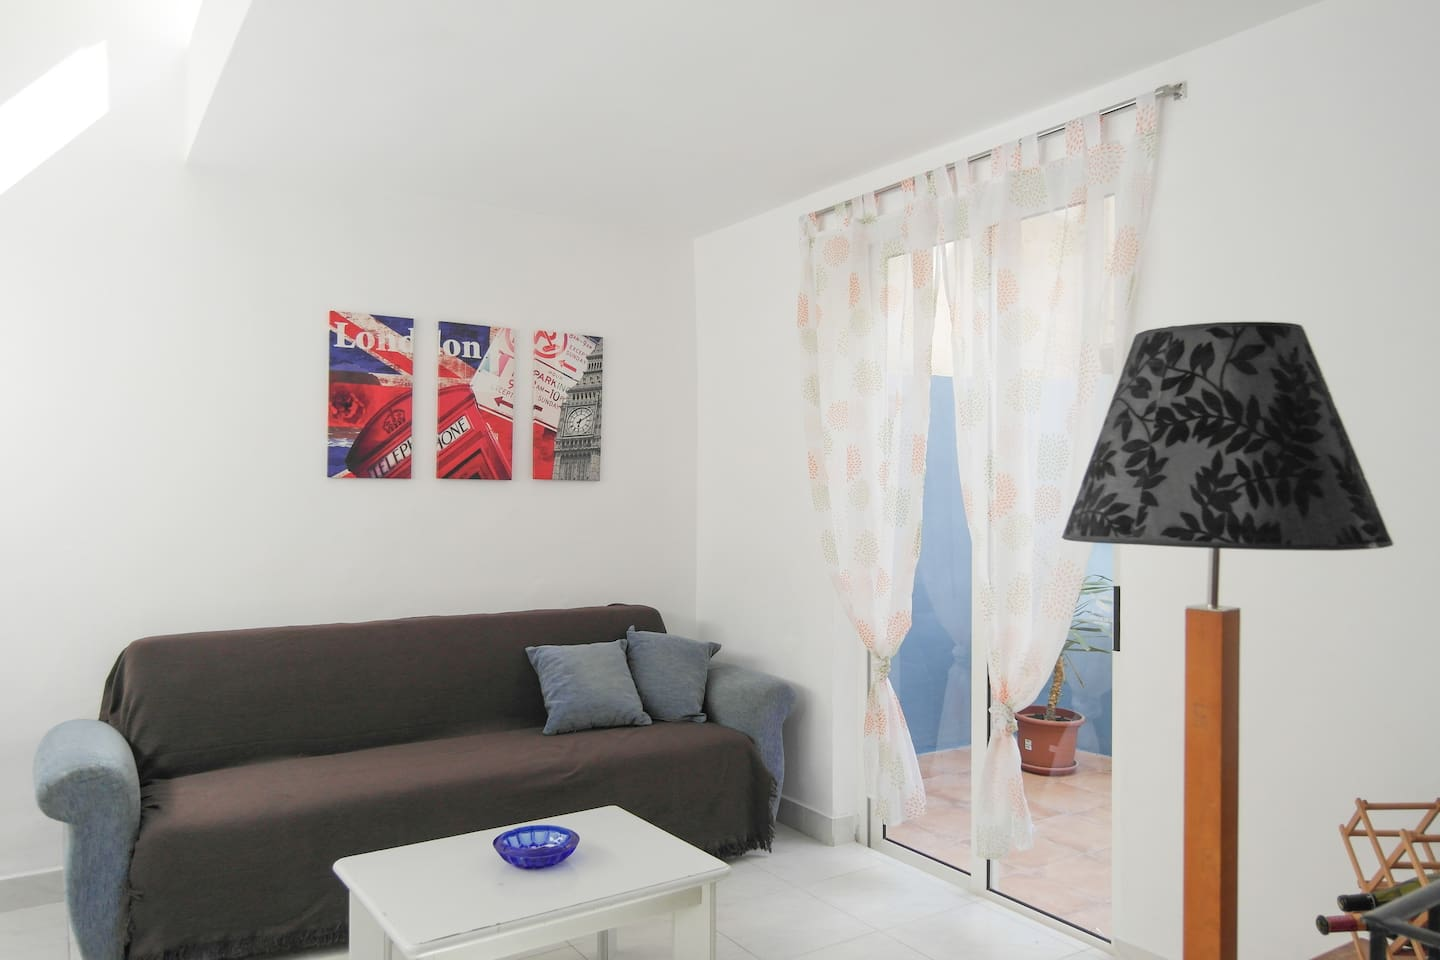 Amazing Flat with 2 bedroom, a Garden, a Balcony and Living room. Ideal up to 5 people.